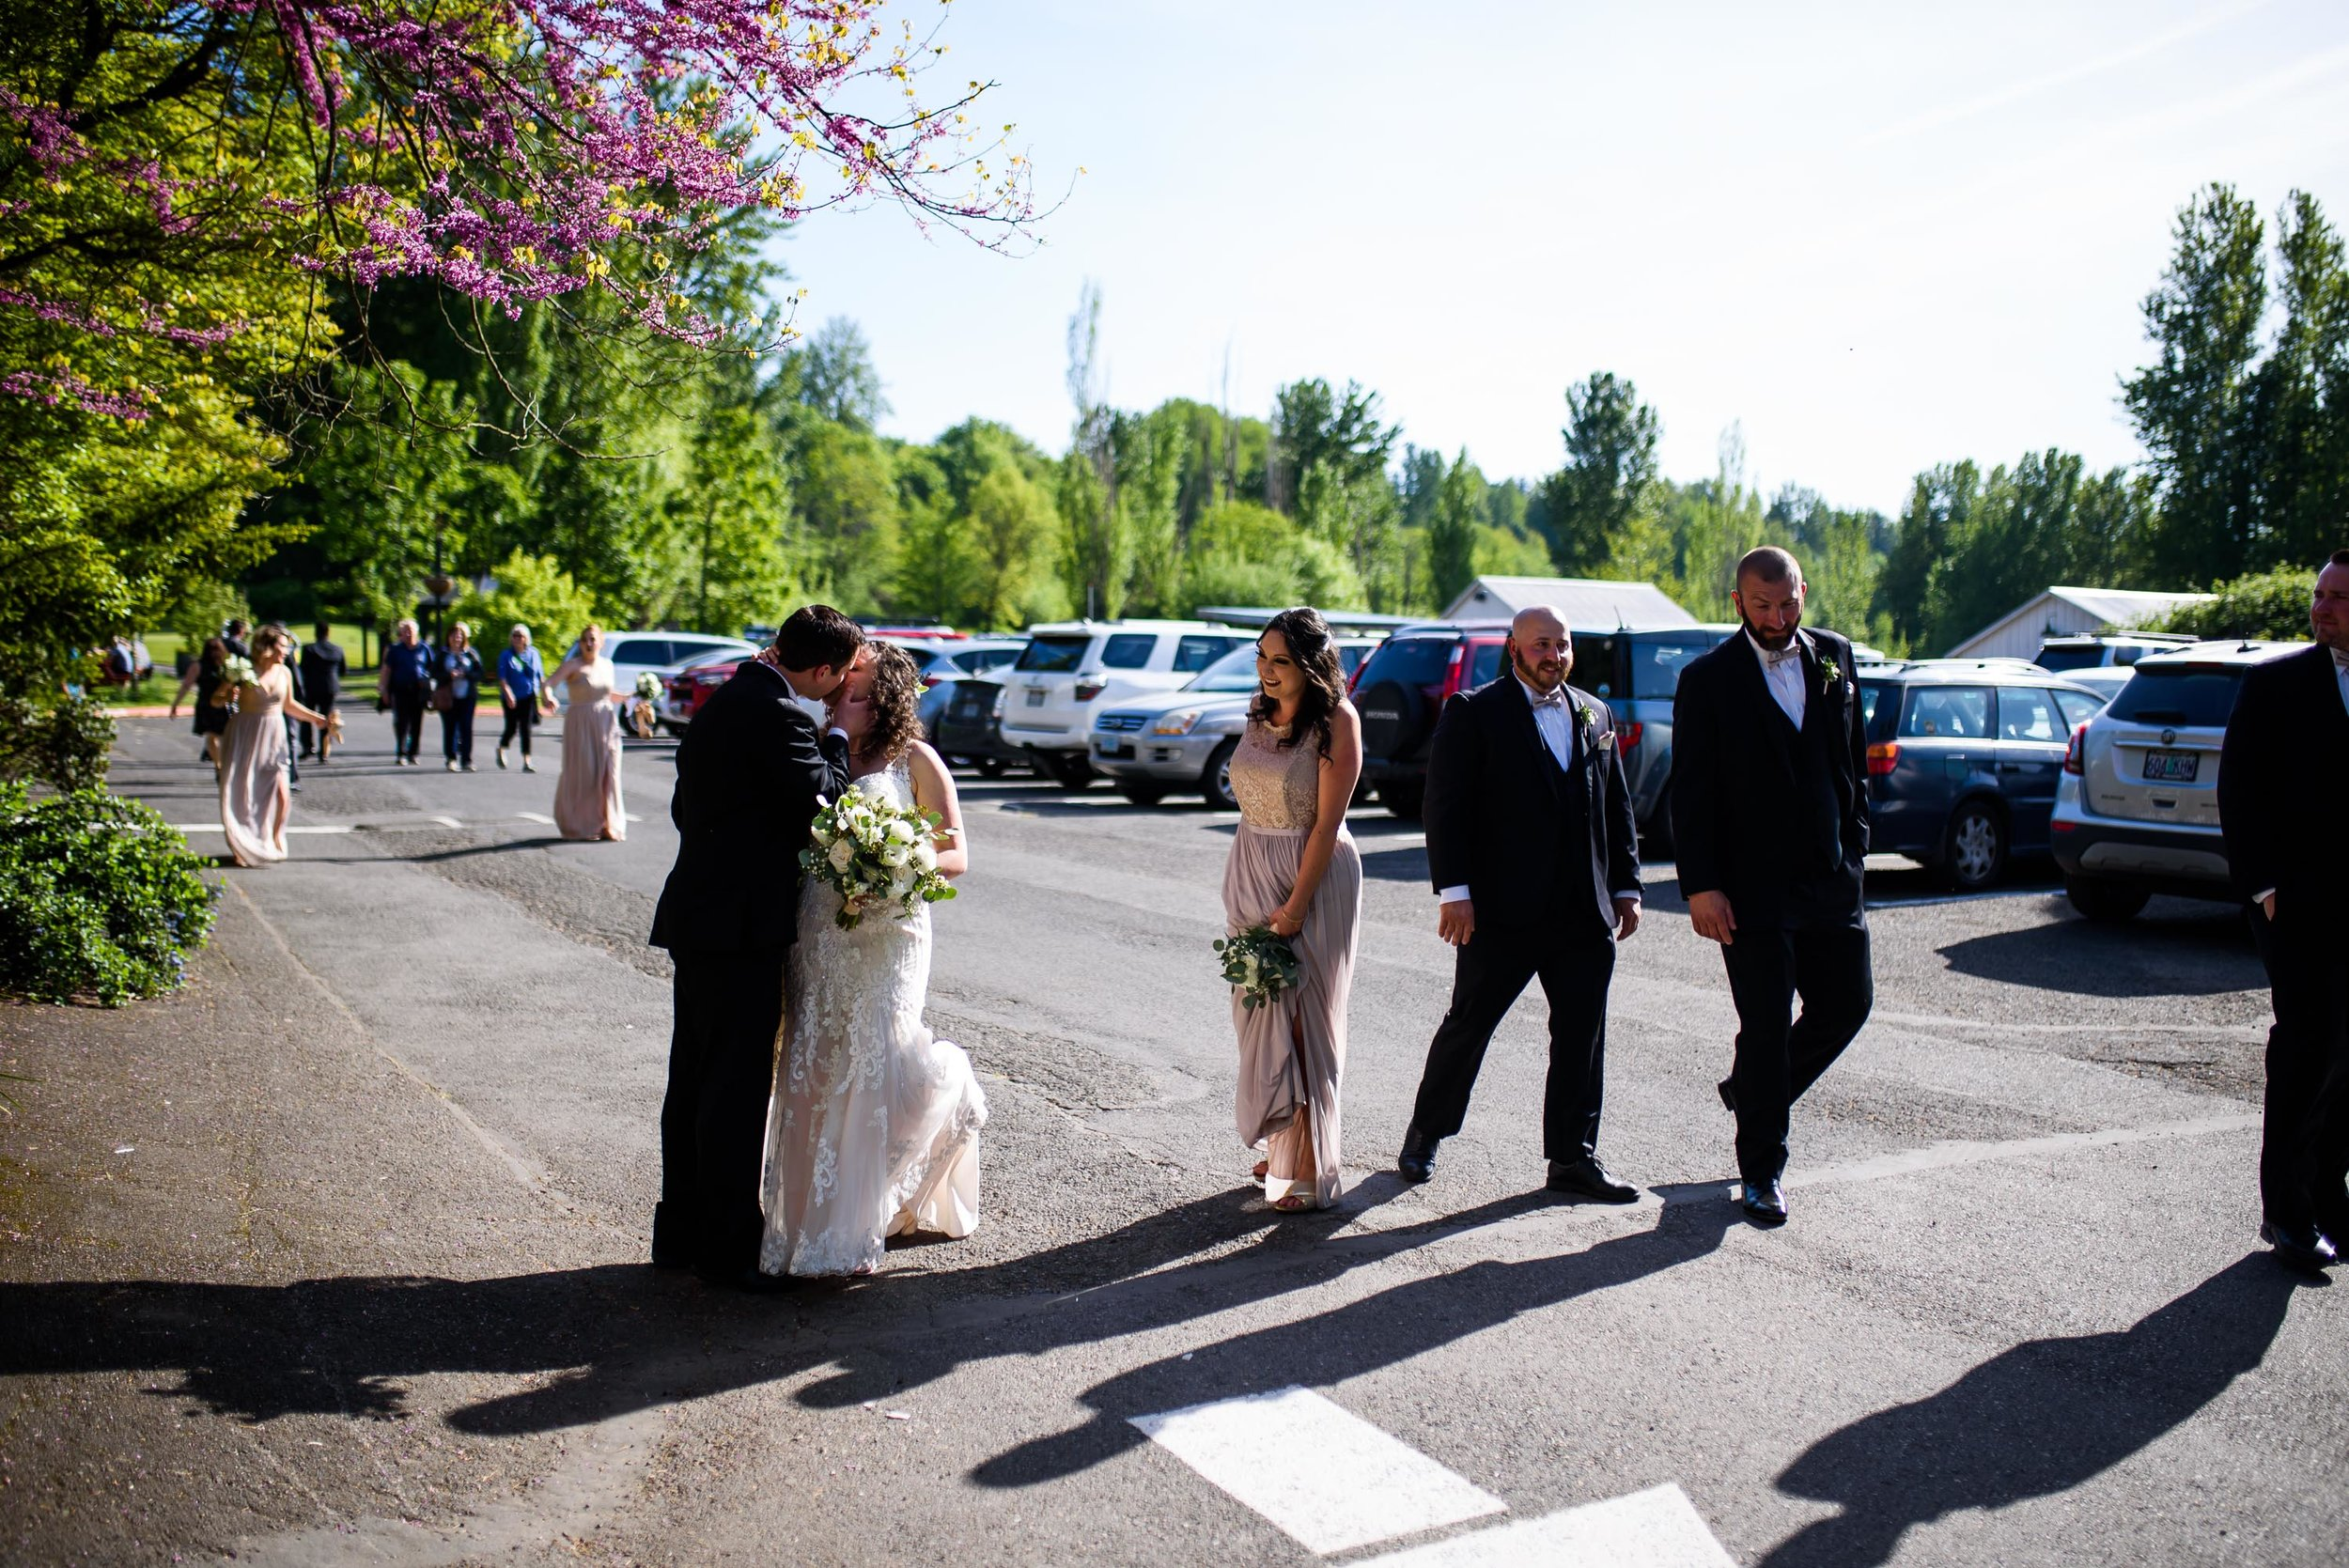 edgefield wedding photos56.jpg